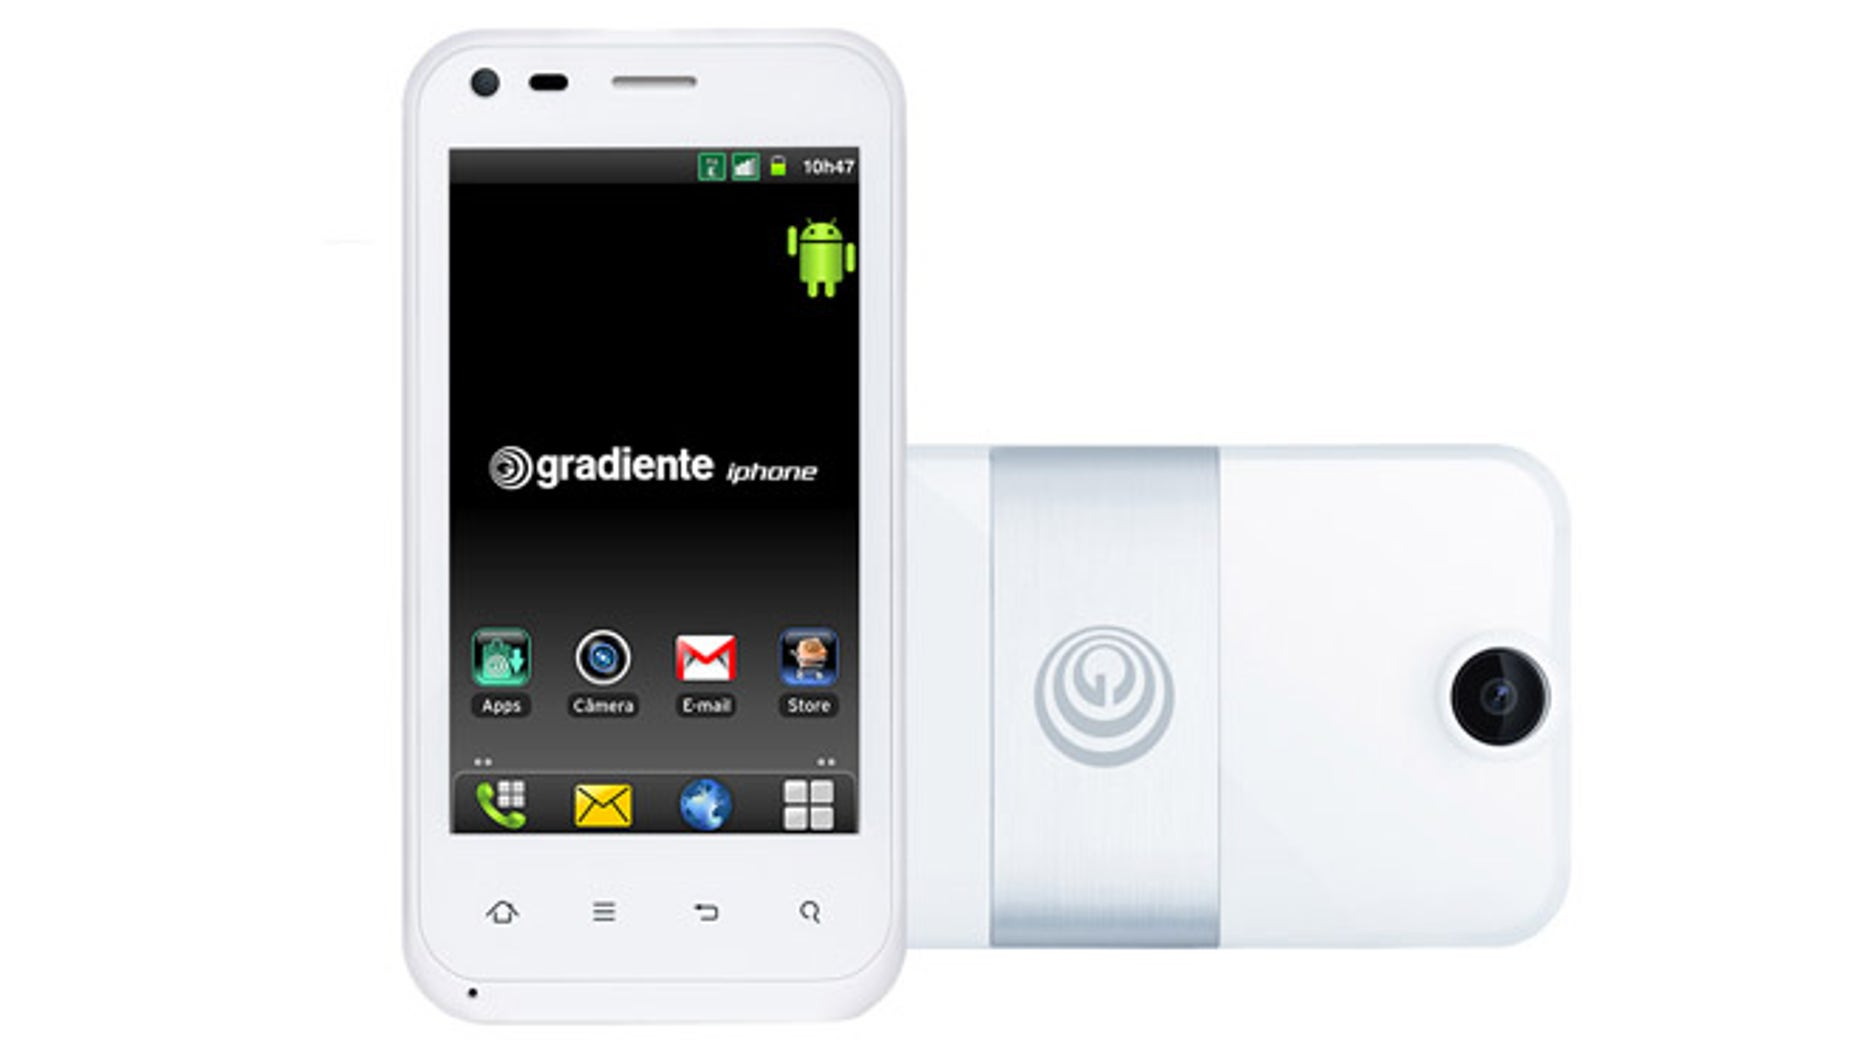 Brazilian tech company Gradiente filed its request to use the iPhone brand in 2000, and currently sells phones like this one with that brand.